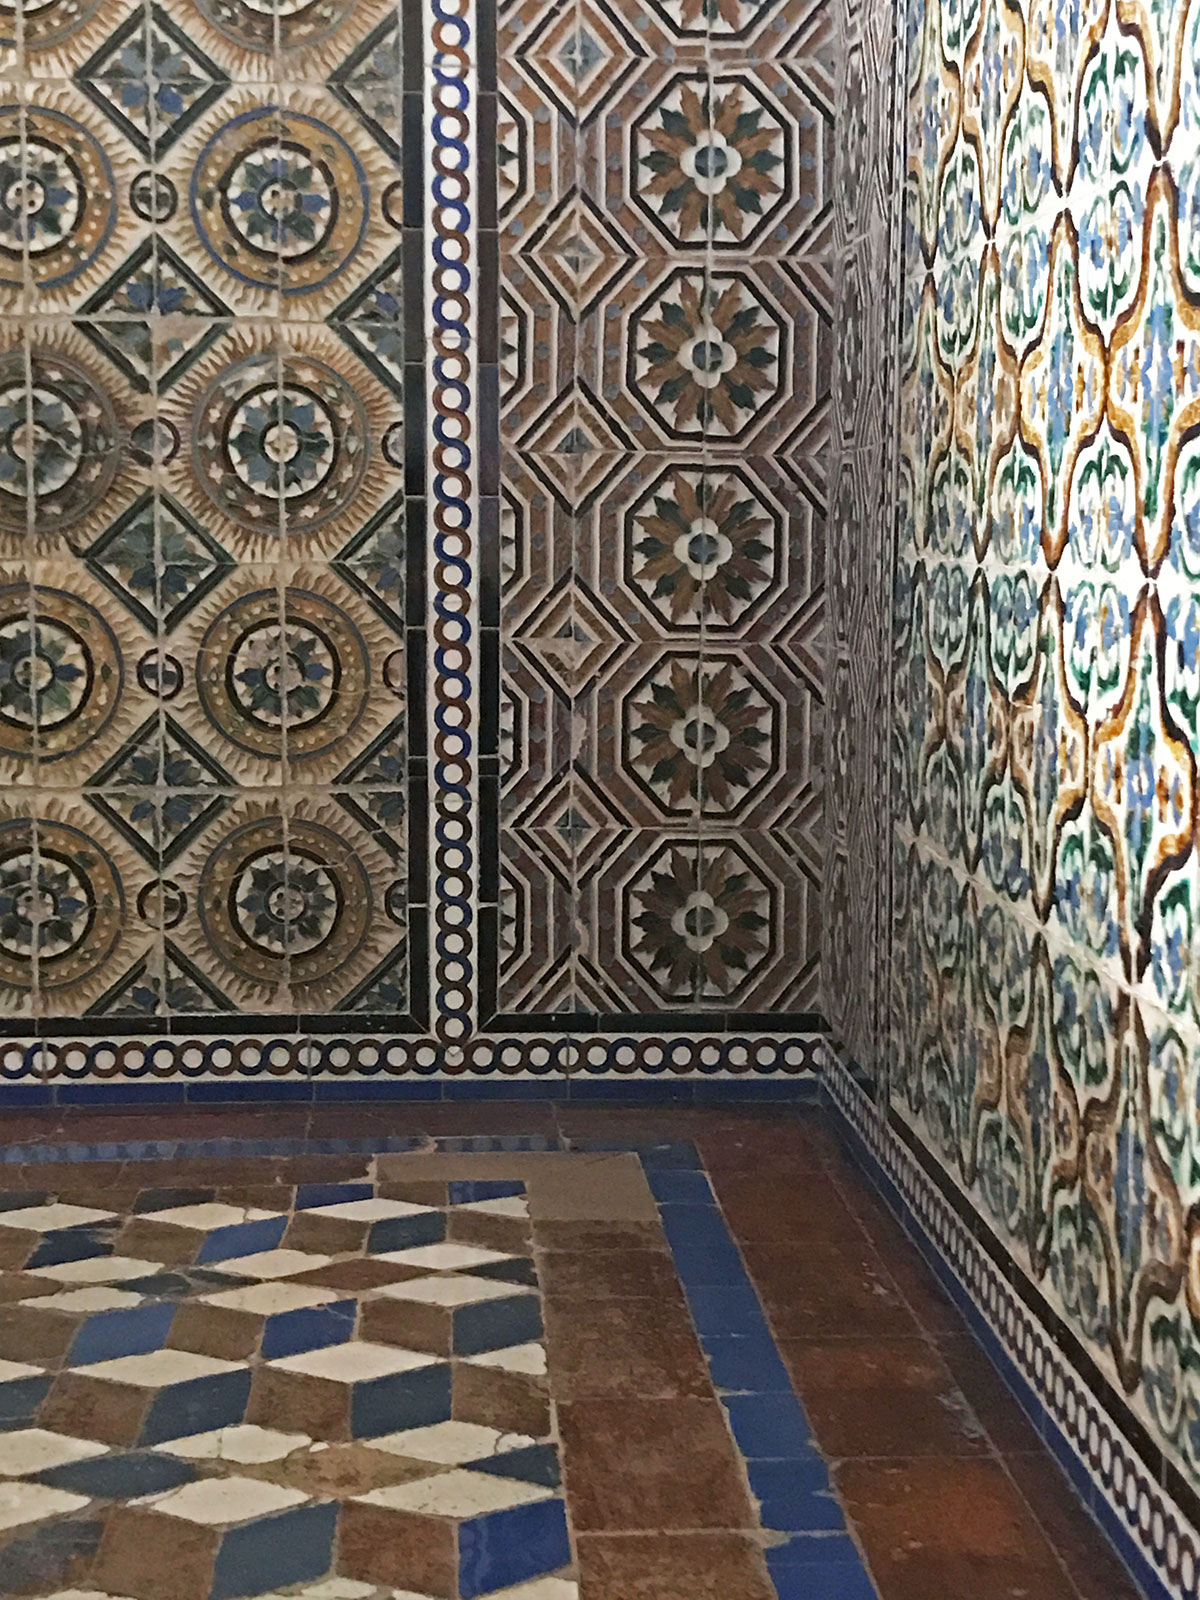 Beautiful, intricate tile work at the Alcázar in Seville, Spain